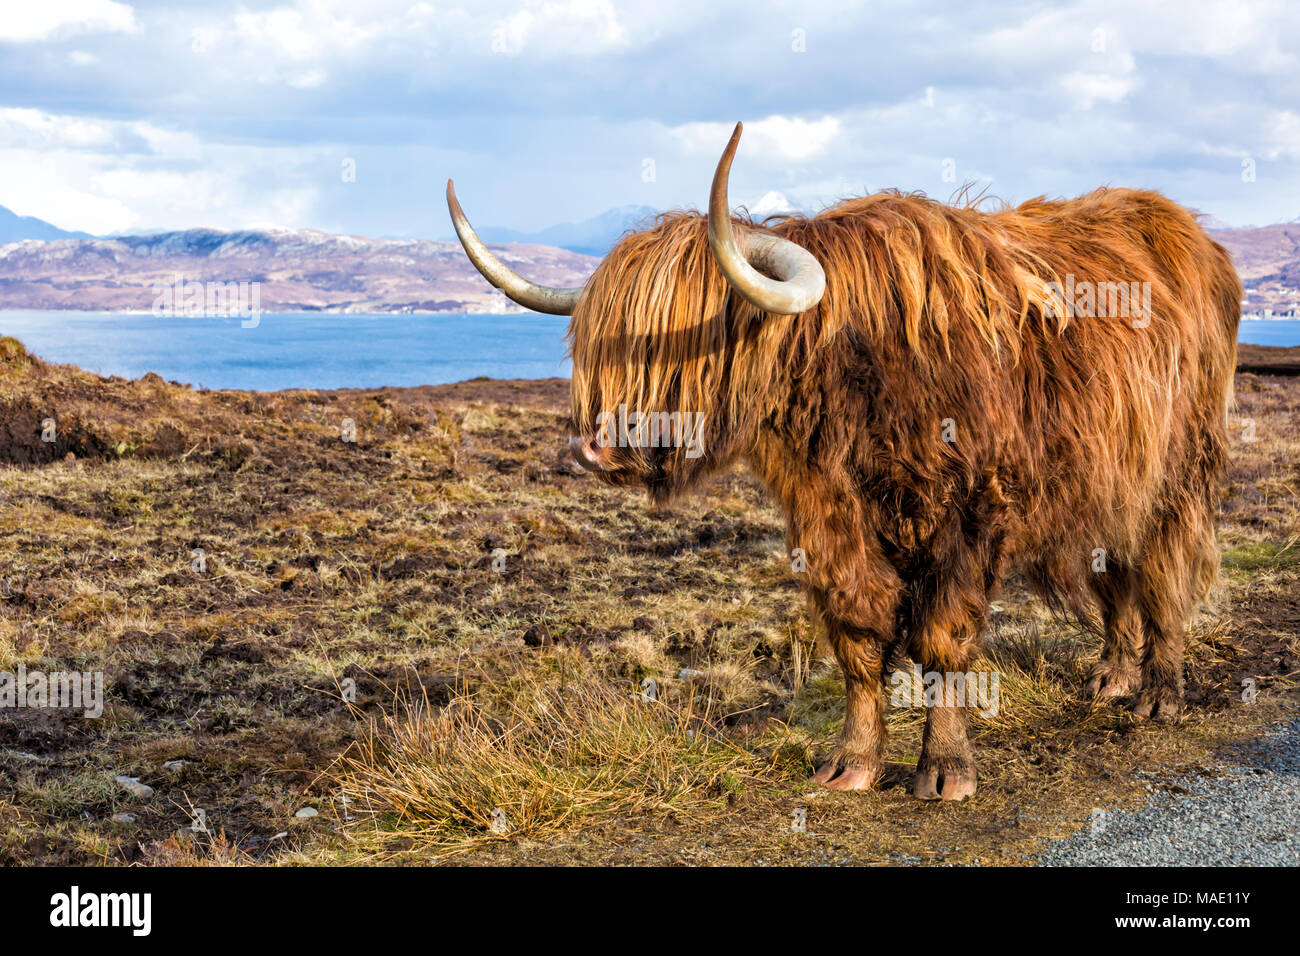 Vache Highland cattle en mode paysage sur l'île de Skye près de Elgol, Scotland, UK en Mars Photo Stock